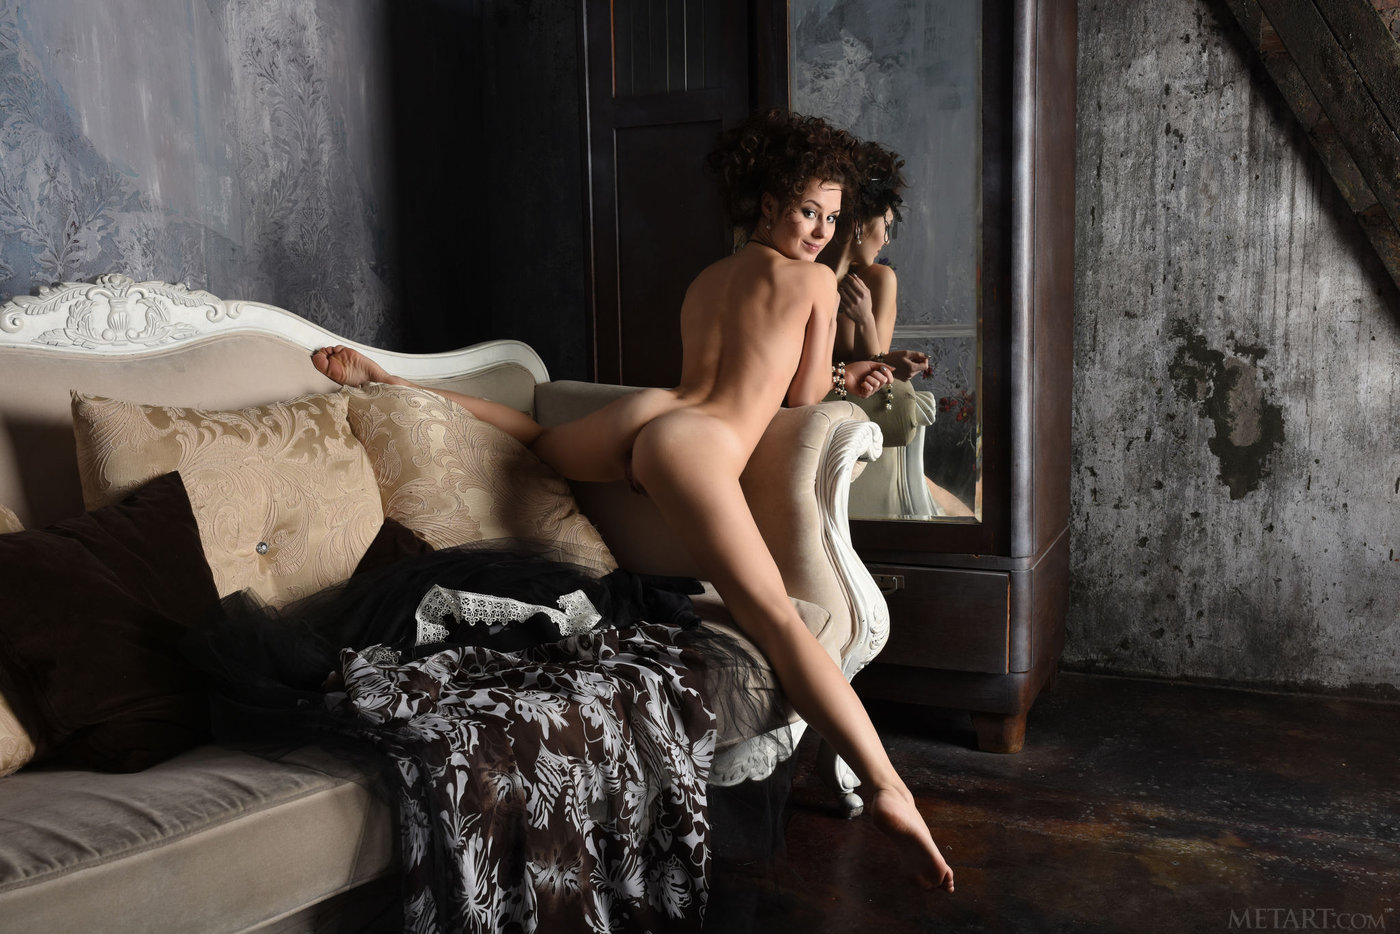 Gothic-style get-up brunette showing her luxurious pussy up close